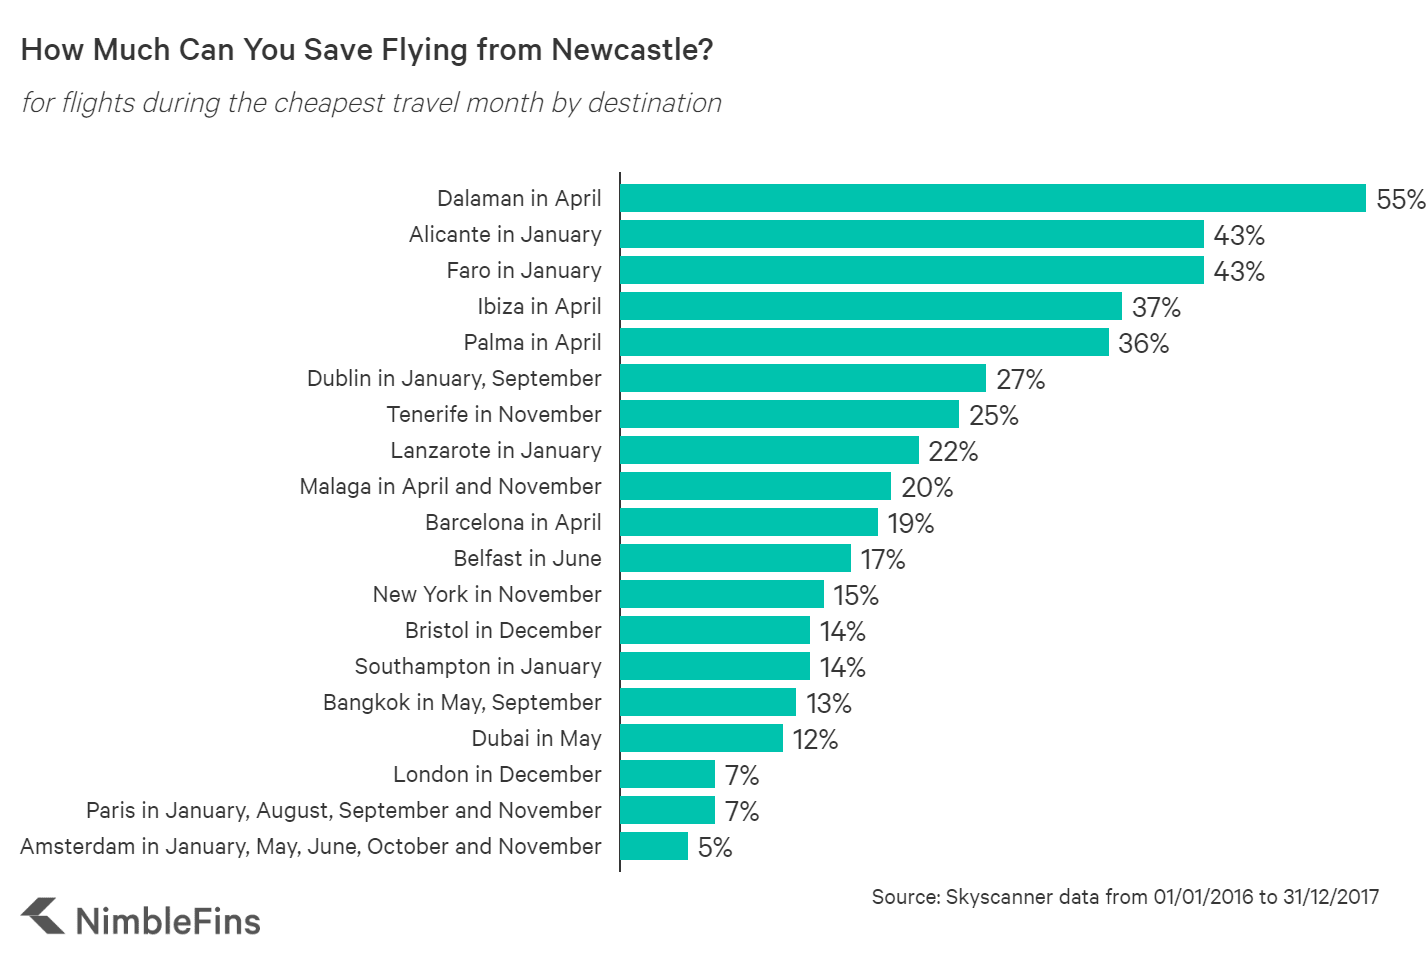 Chart showing savings by booking flights from Newcastle during certain months to specific destinations